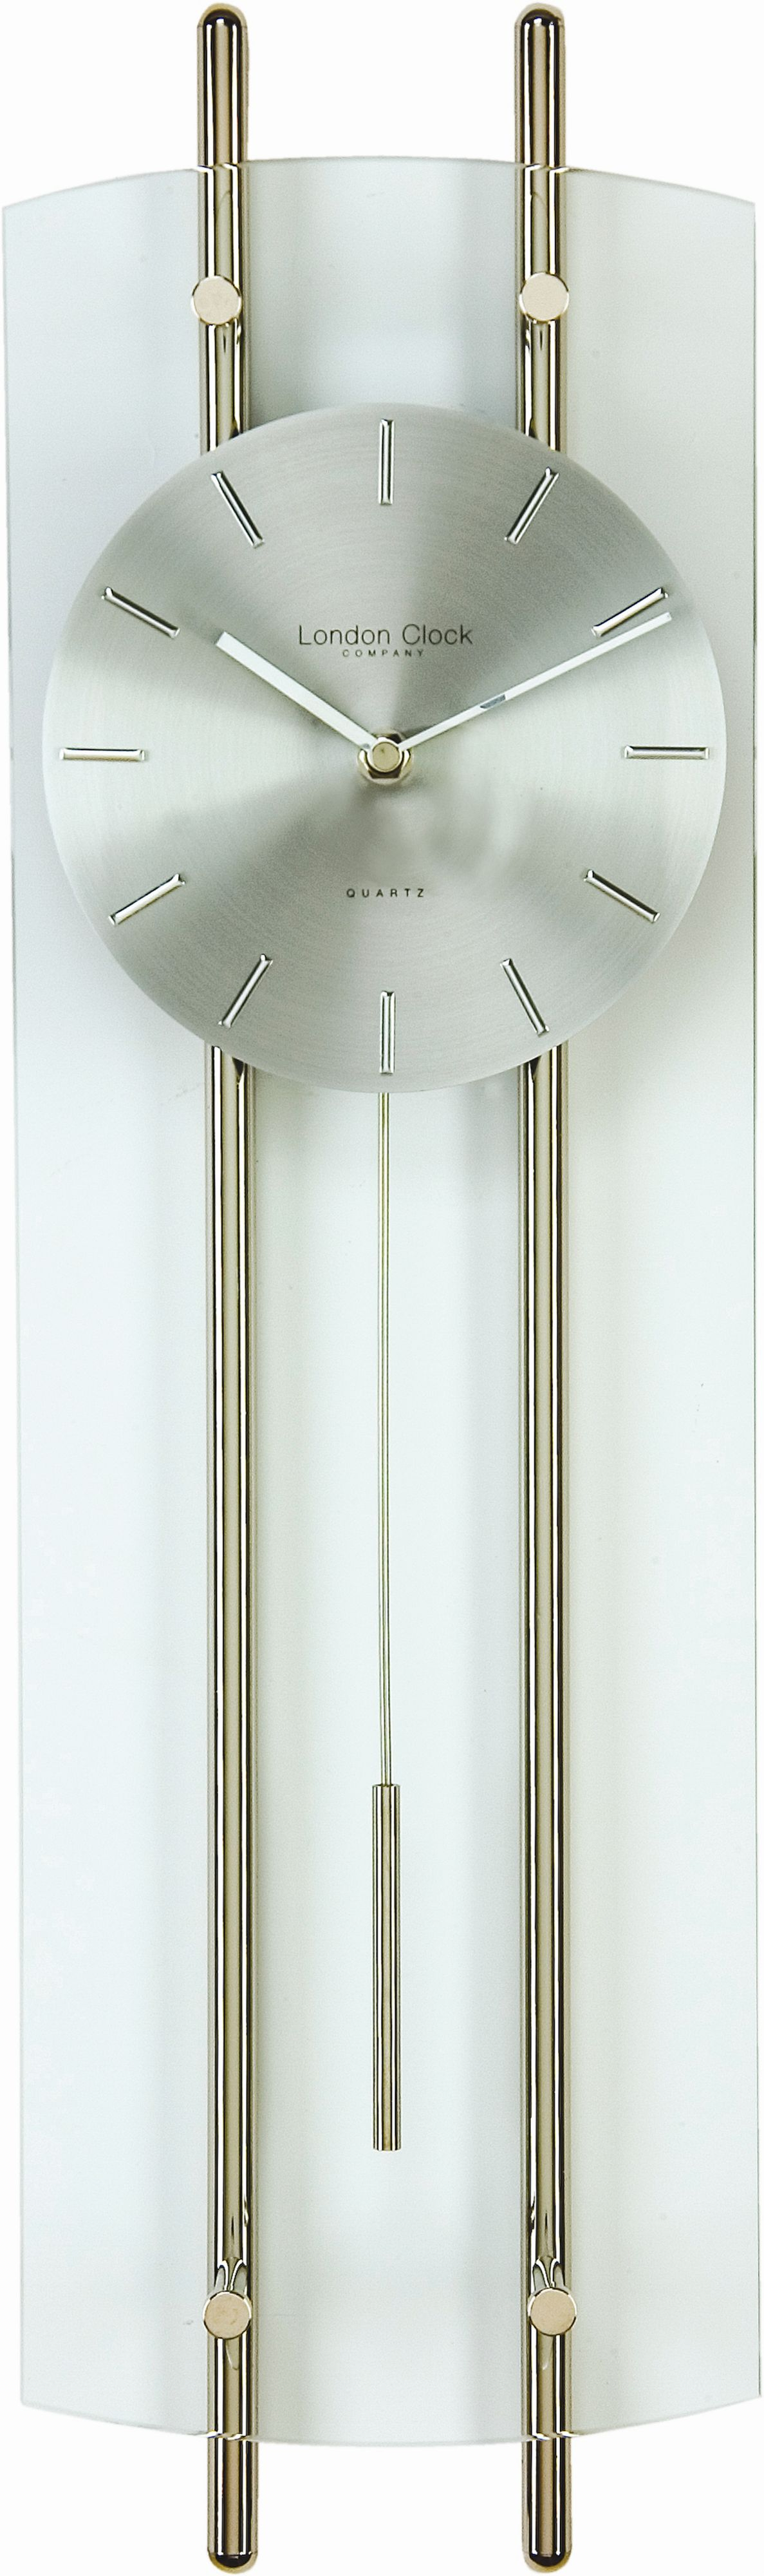 Clear glass pendulum bar wall clock